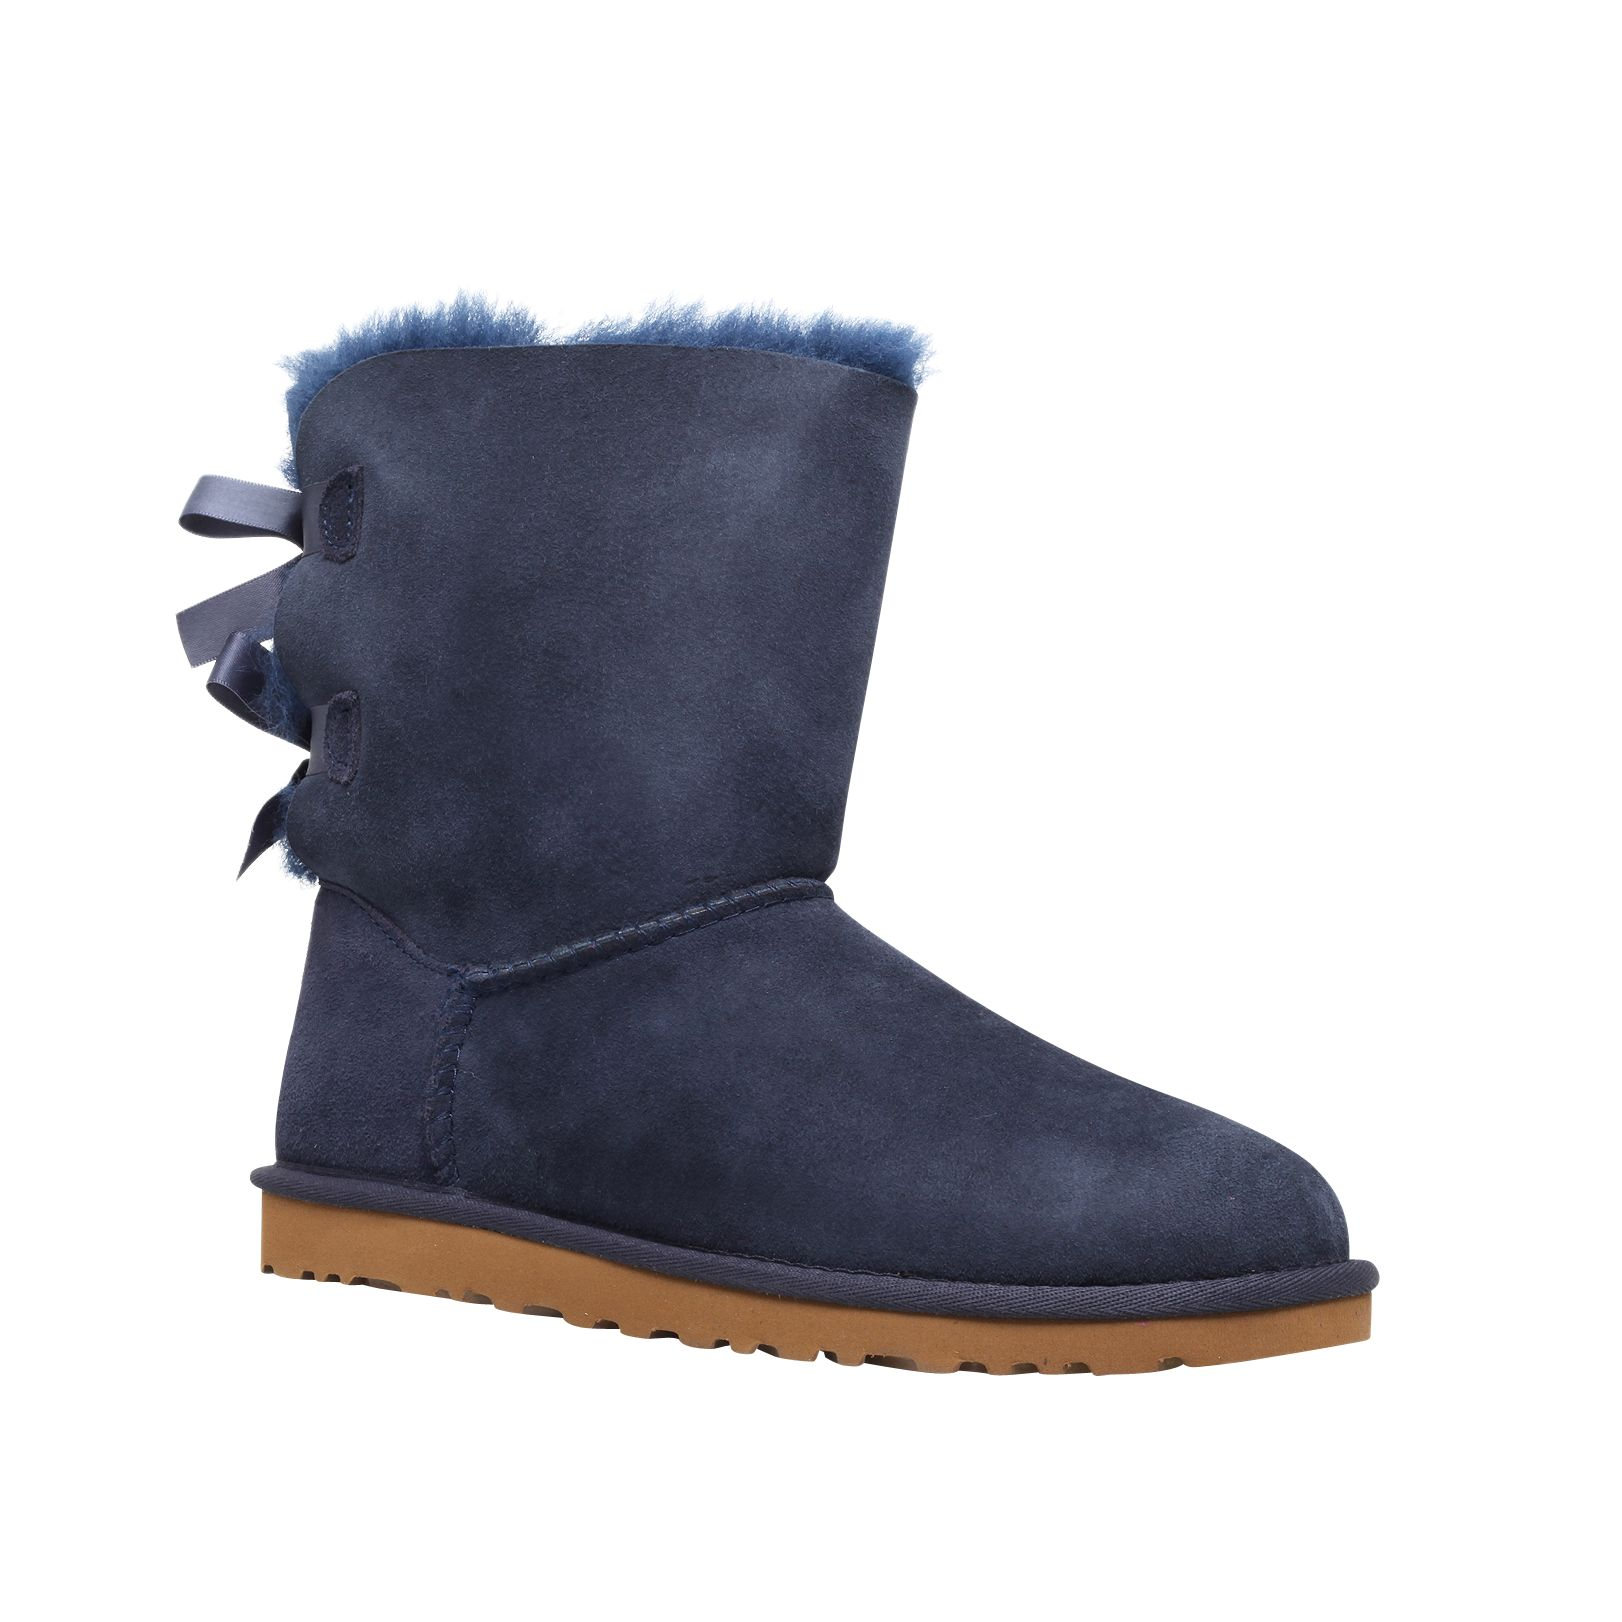 ugg bailey bow calf boots navy suede at john lewis partners rh johnlewis com